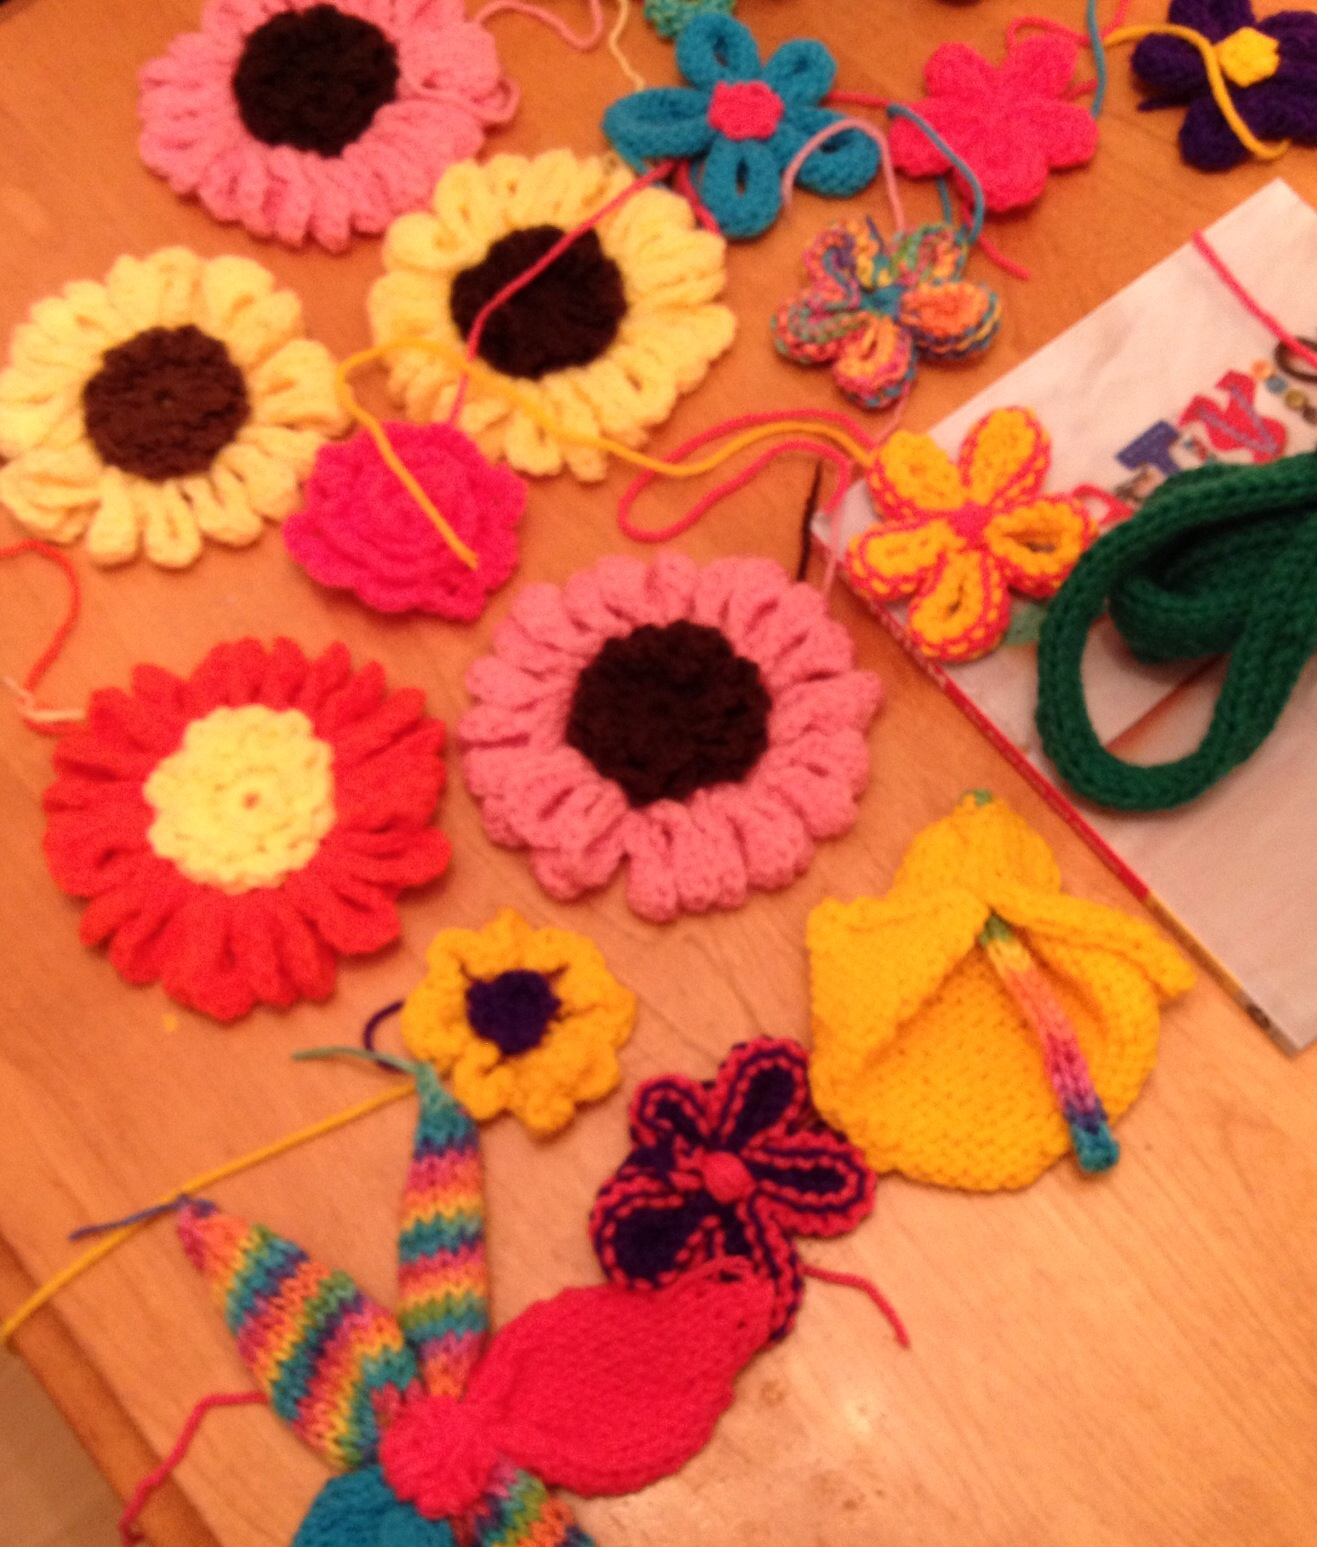 Parts of what will finally become D'vine, a knitted yarn bomb vine with knitted and crocheted flowers attached.